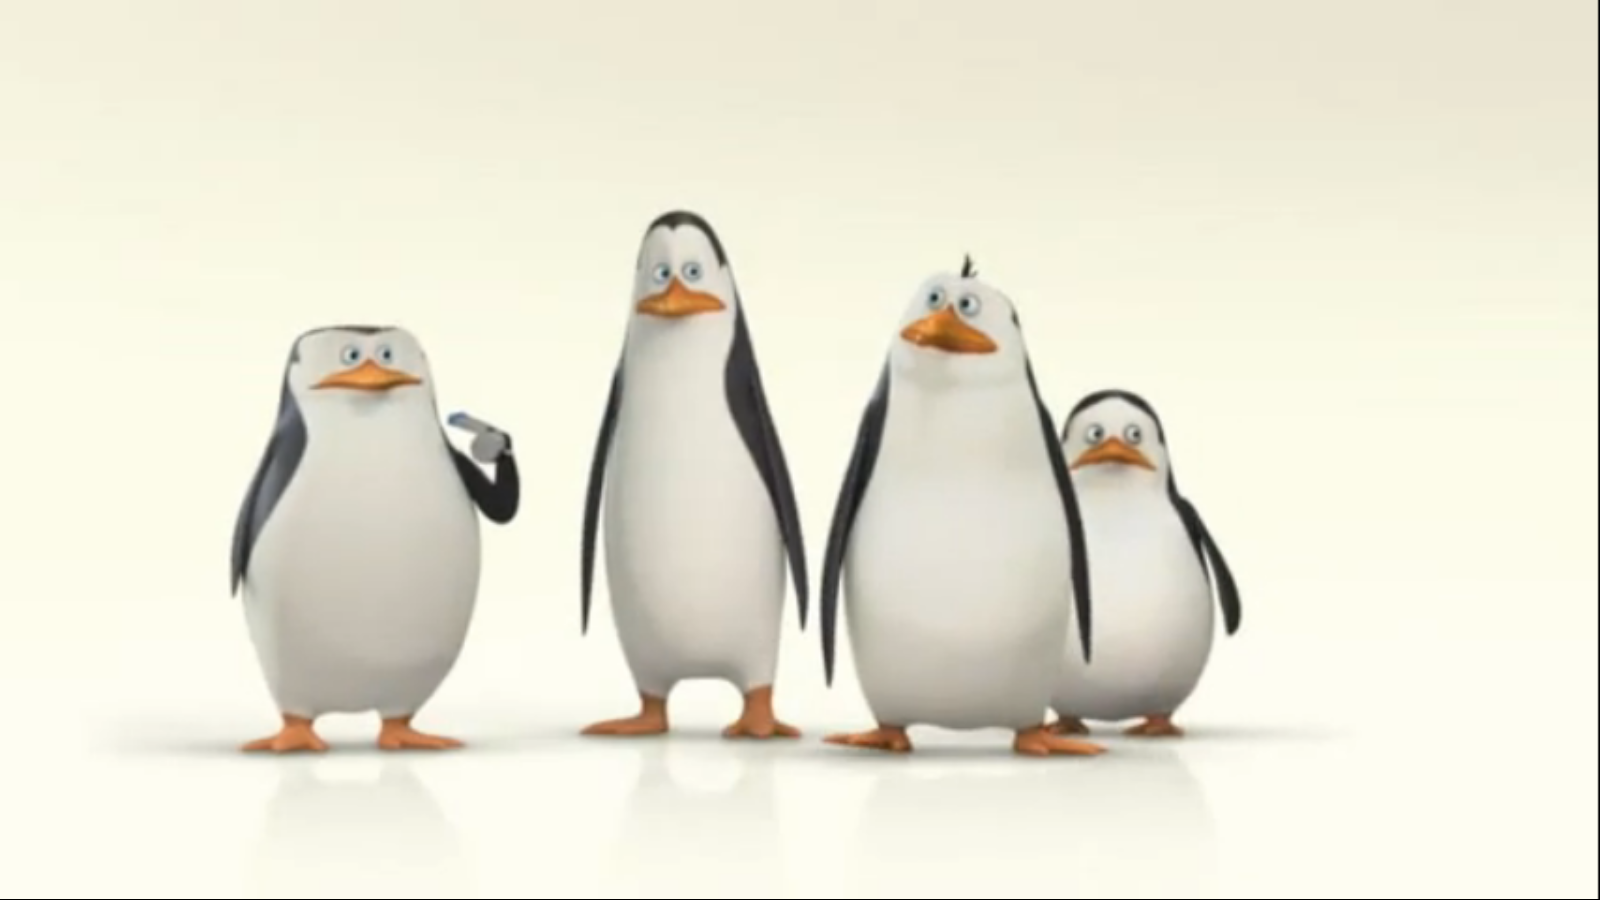 Cool Wallpaper Movie Penguins Madagascar - 1009cd7e99b7acfb3c152d1f44361265  Gallery_511006.jpg